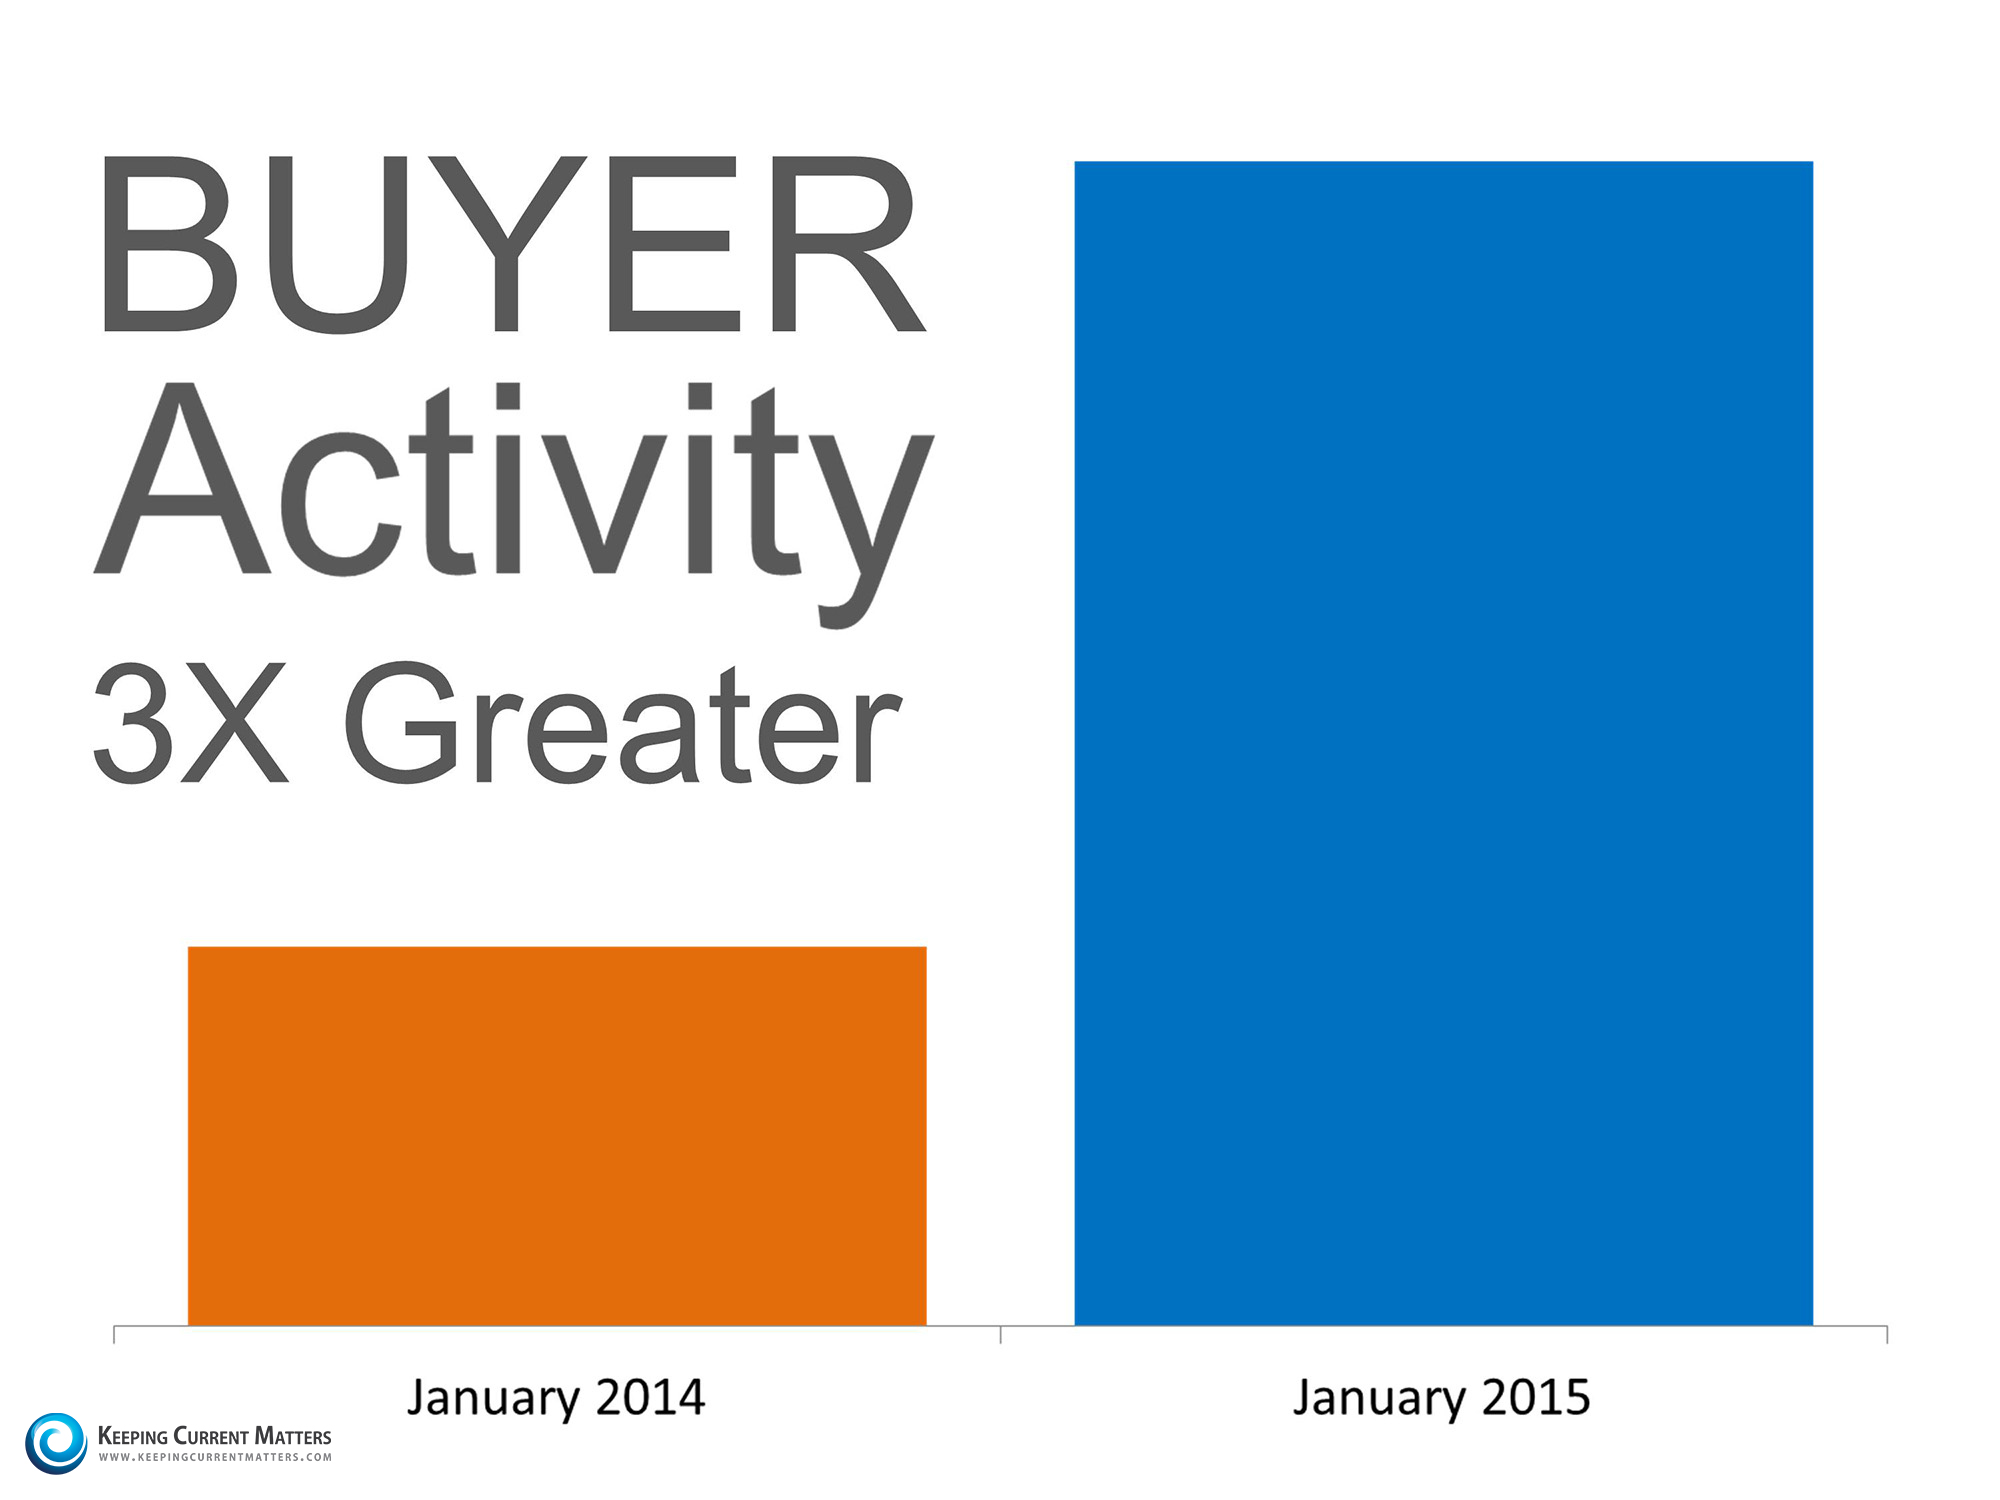 Buyer Activity | Keeping Current Matters